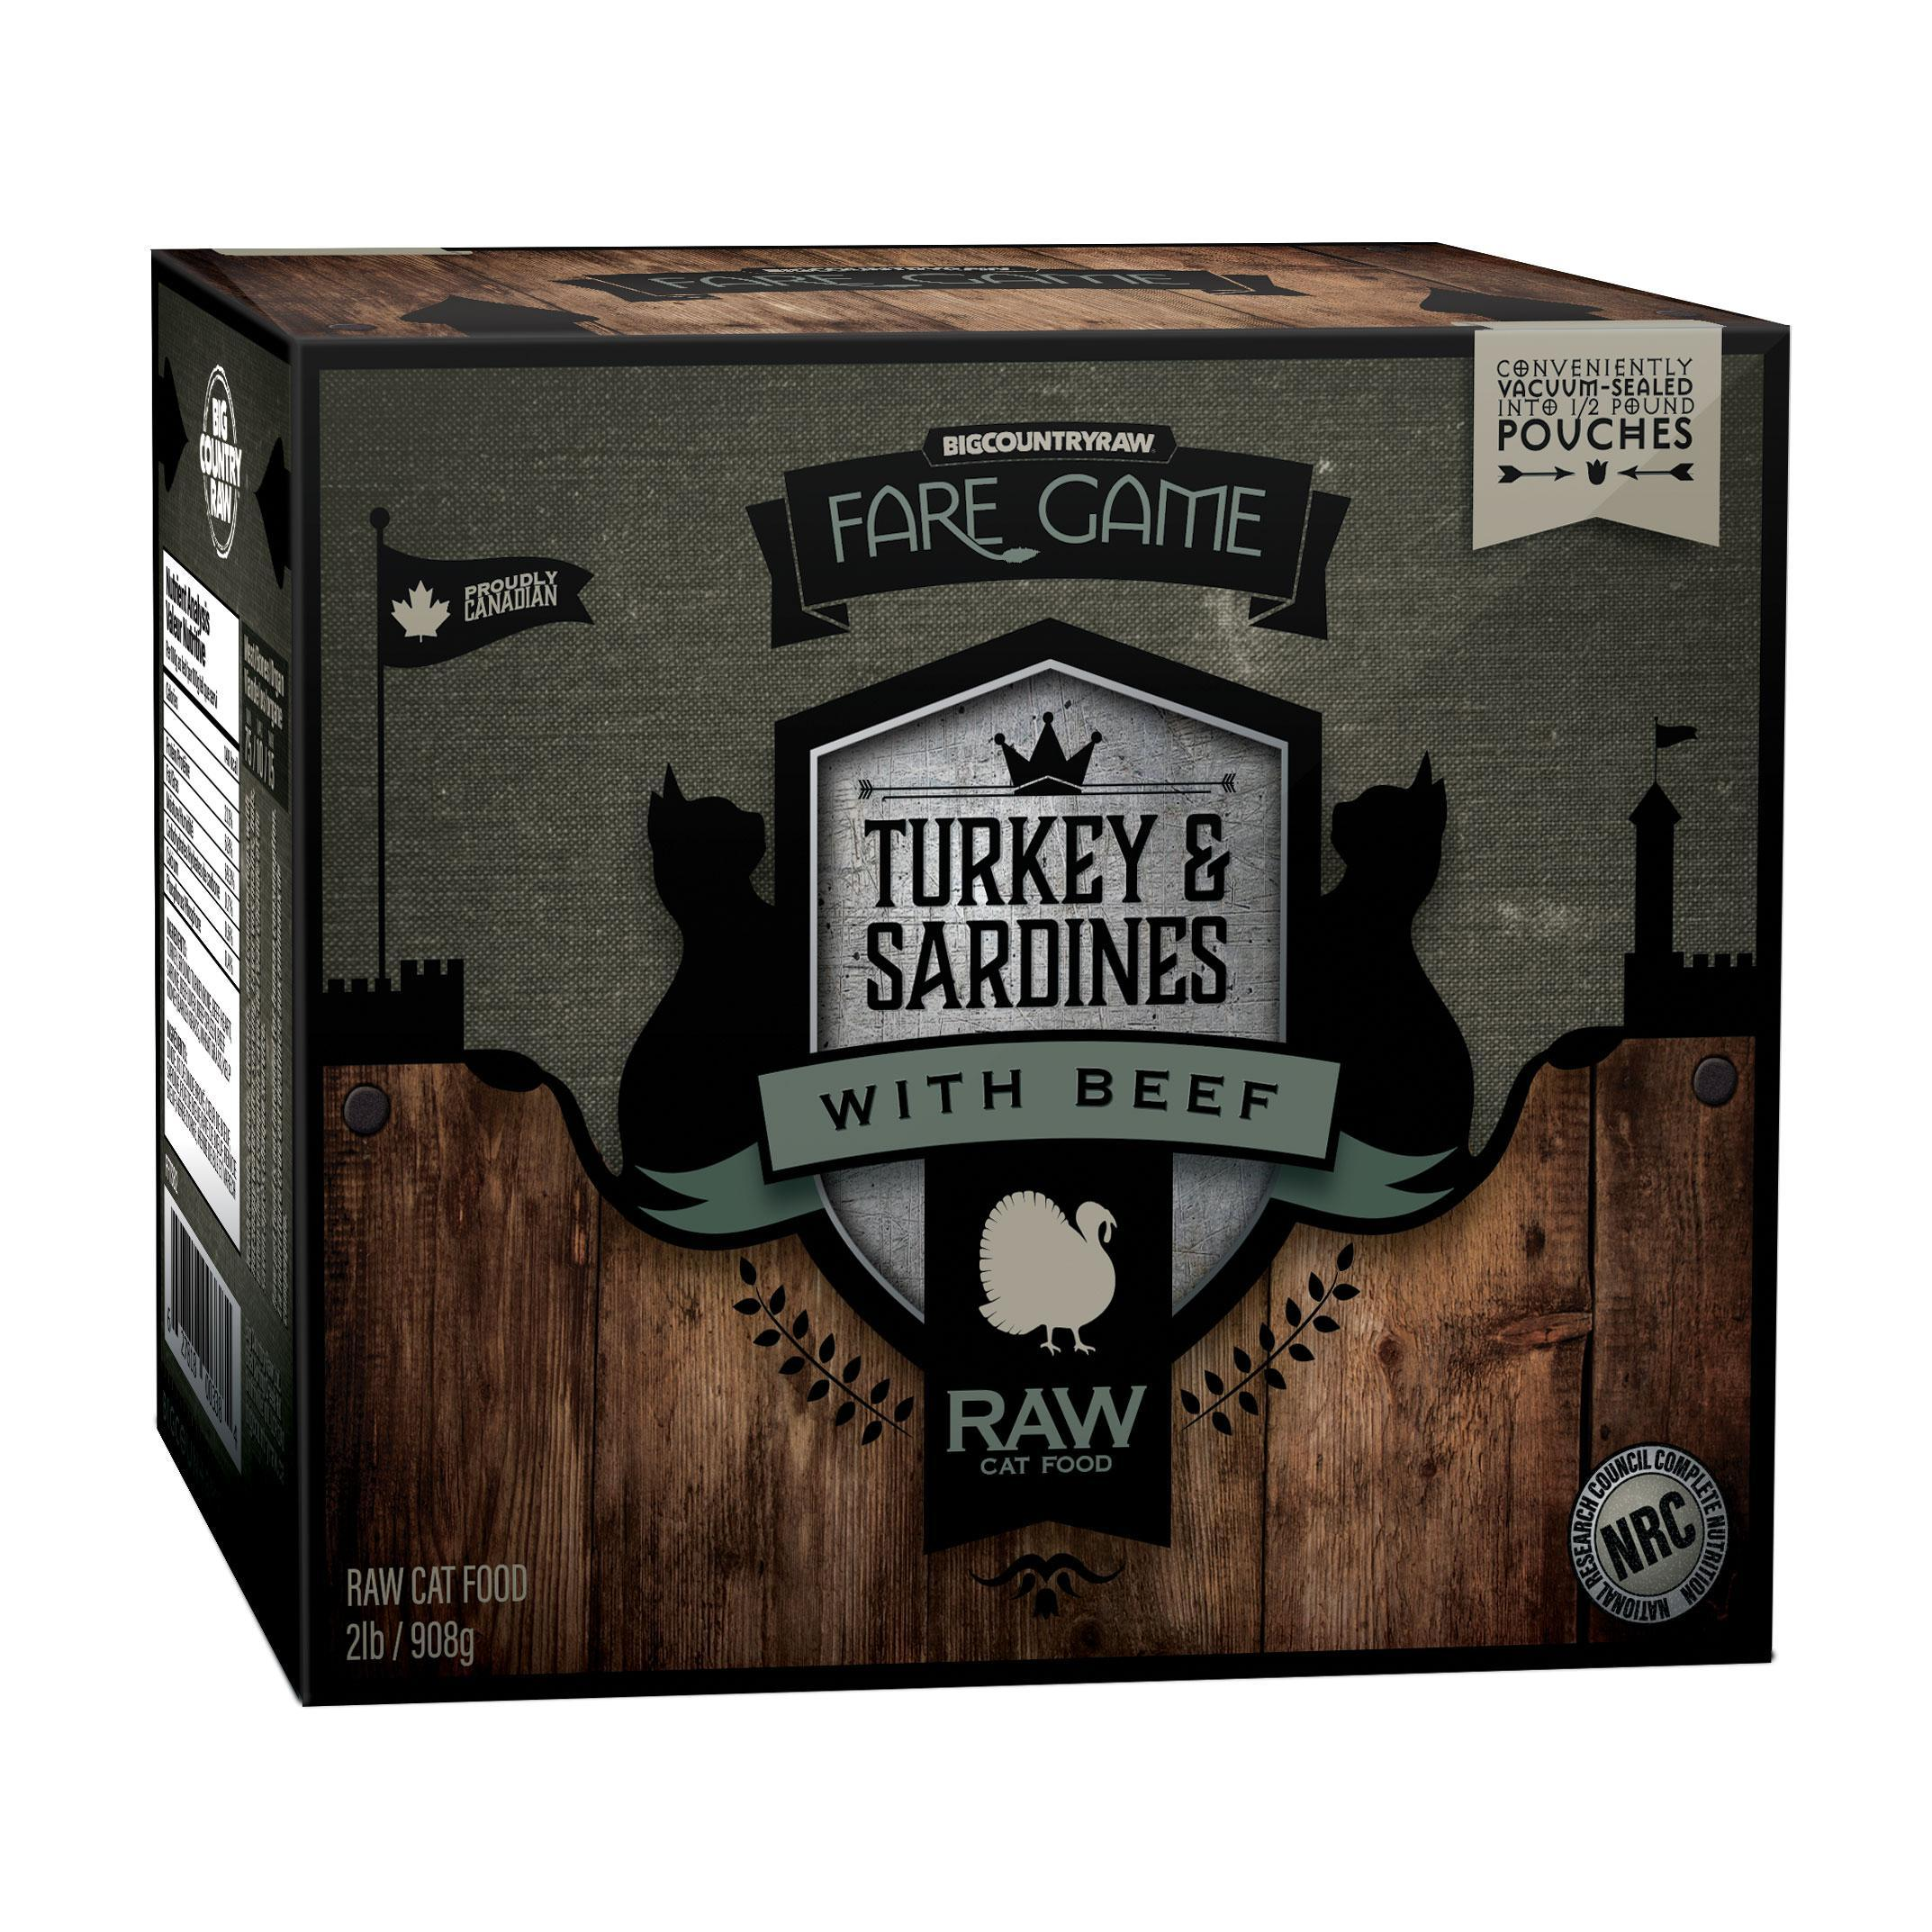 Big Country Raw Fare Game Turkey & Sardines with Beef Raw Frozen Cat Food Image